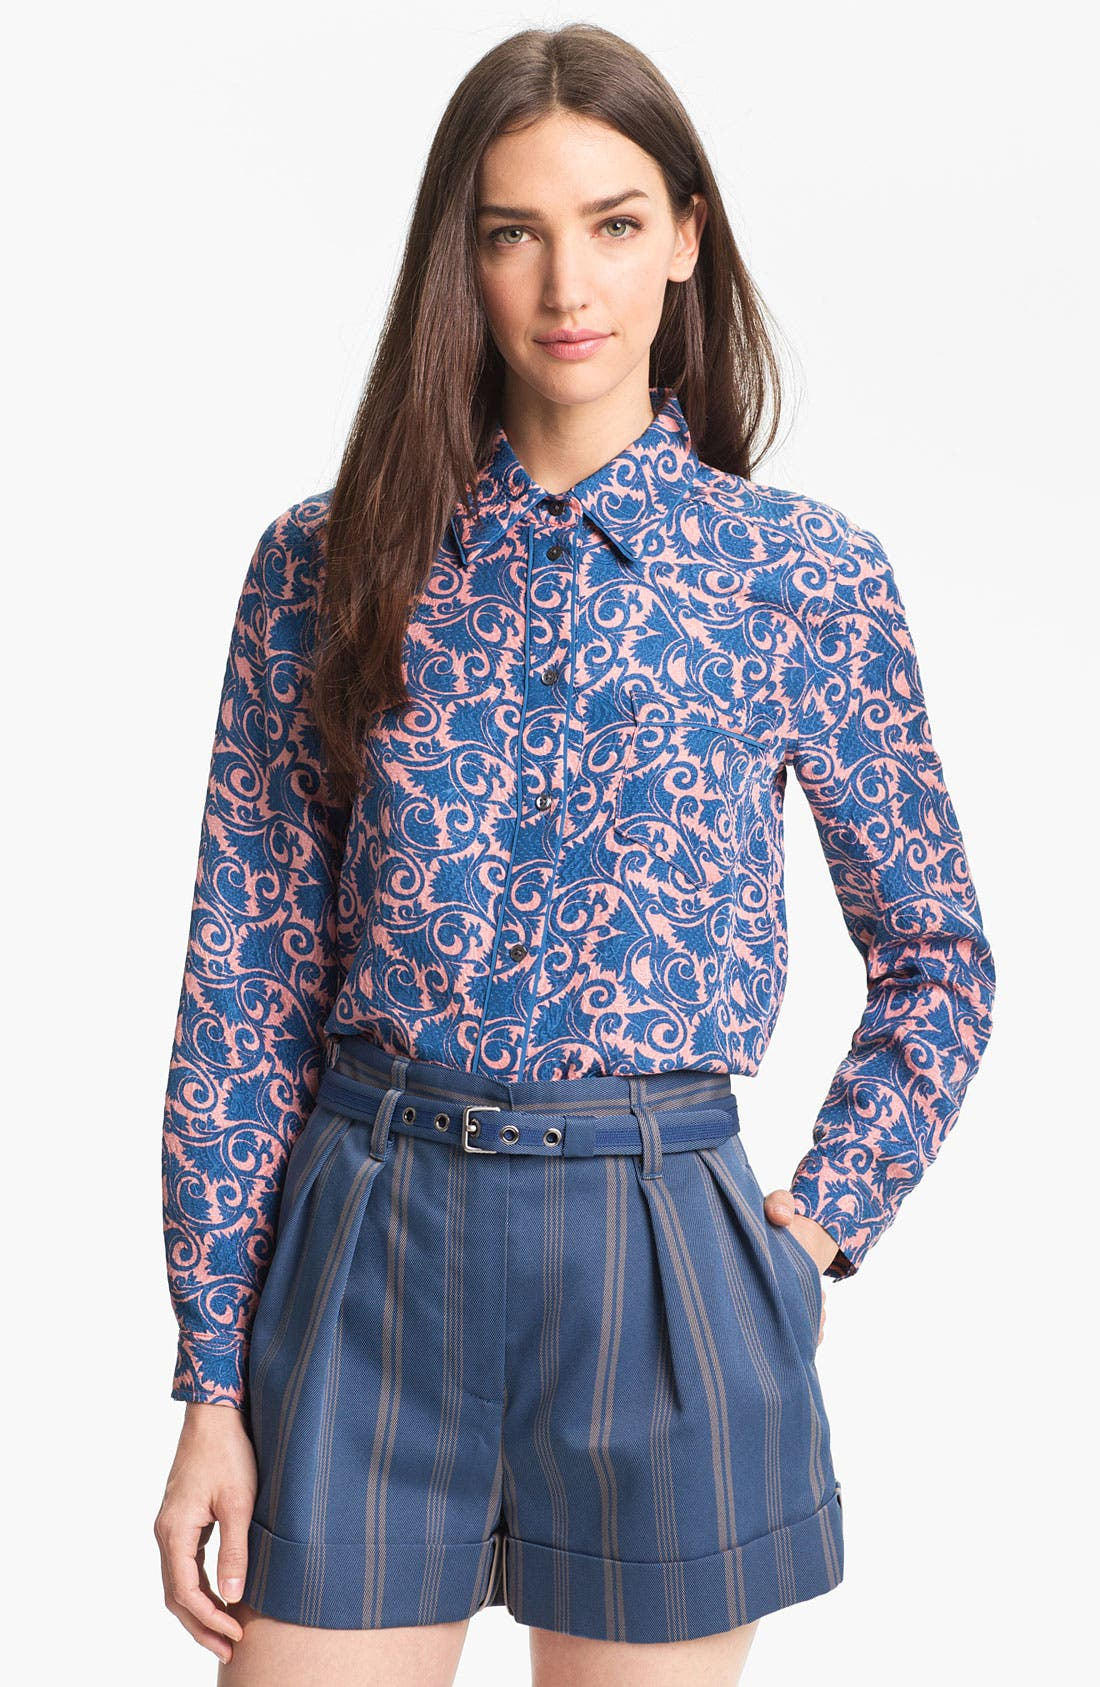 Main Image - MARC BY MARC JACOBS 'Tootsie Flower' Silk Top